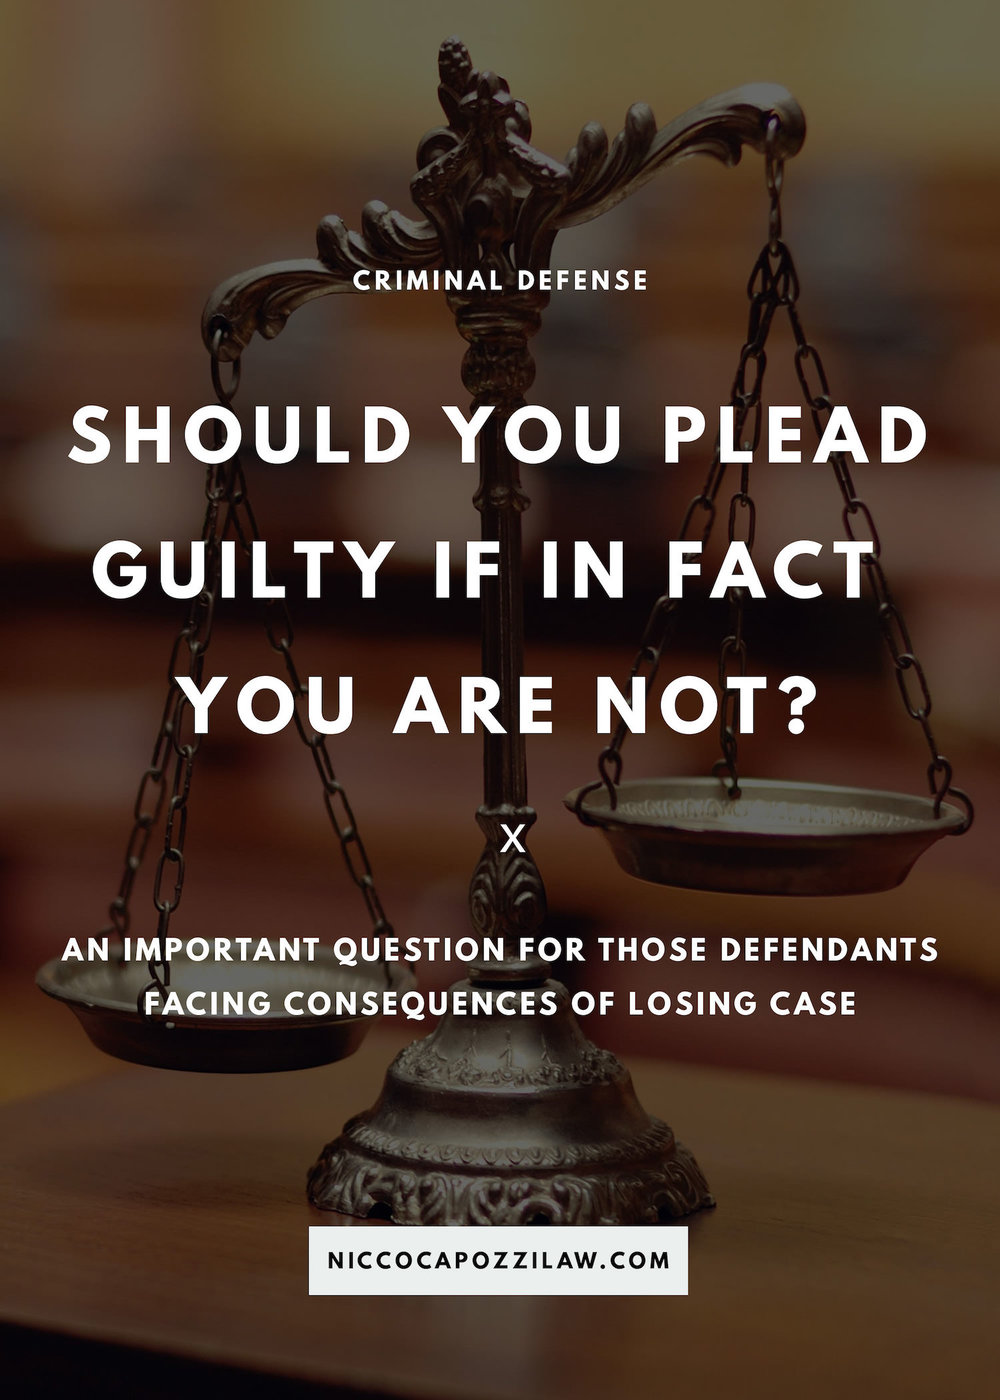 How to Plead Guilty by Mail How to Plead Guilty by Mail new photo